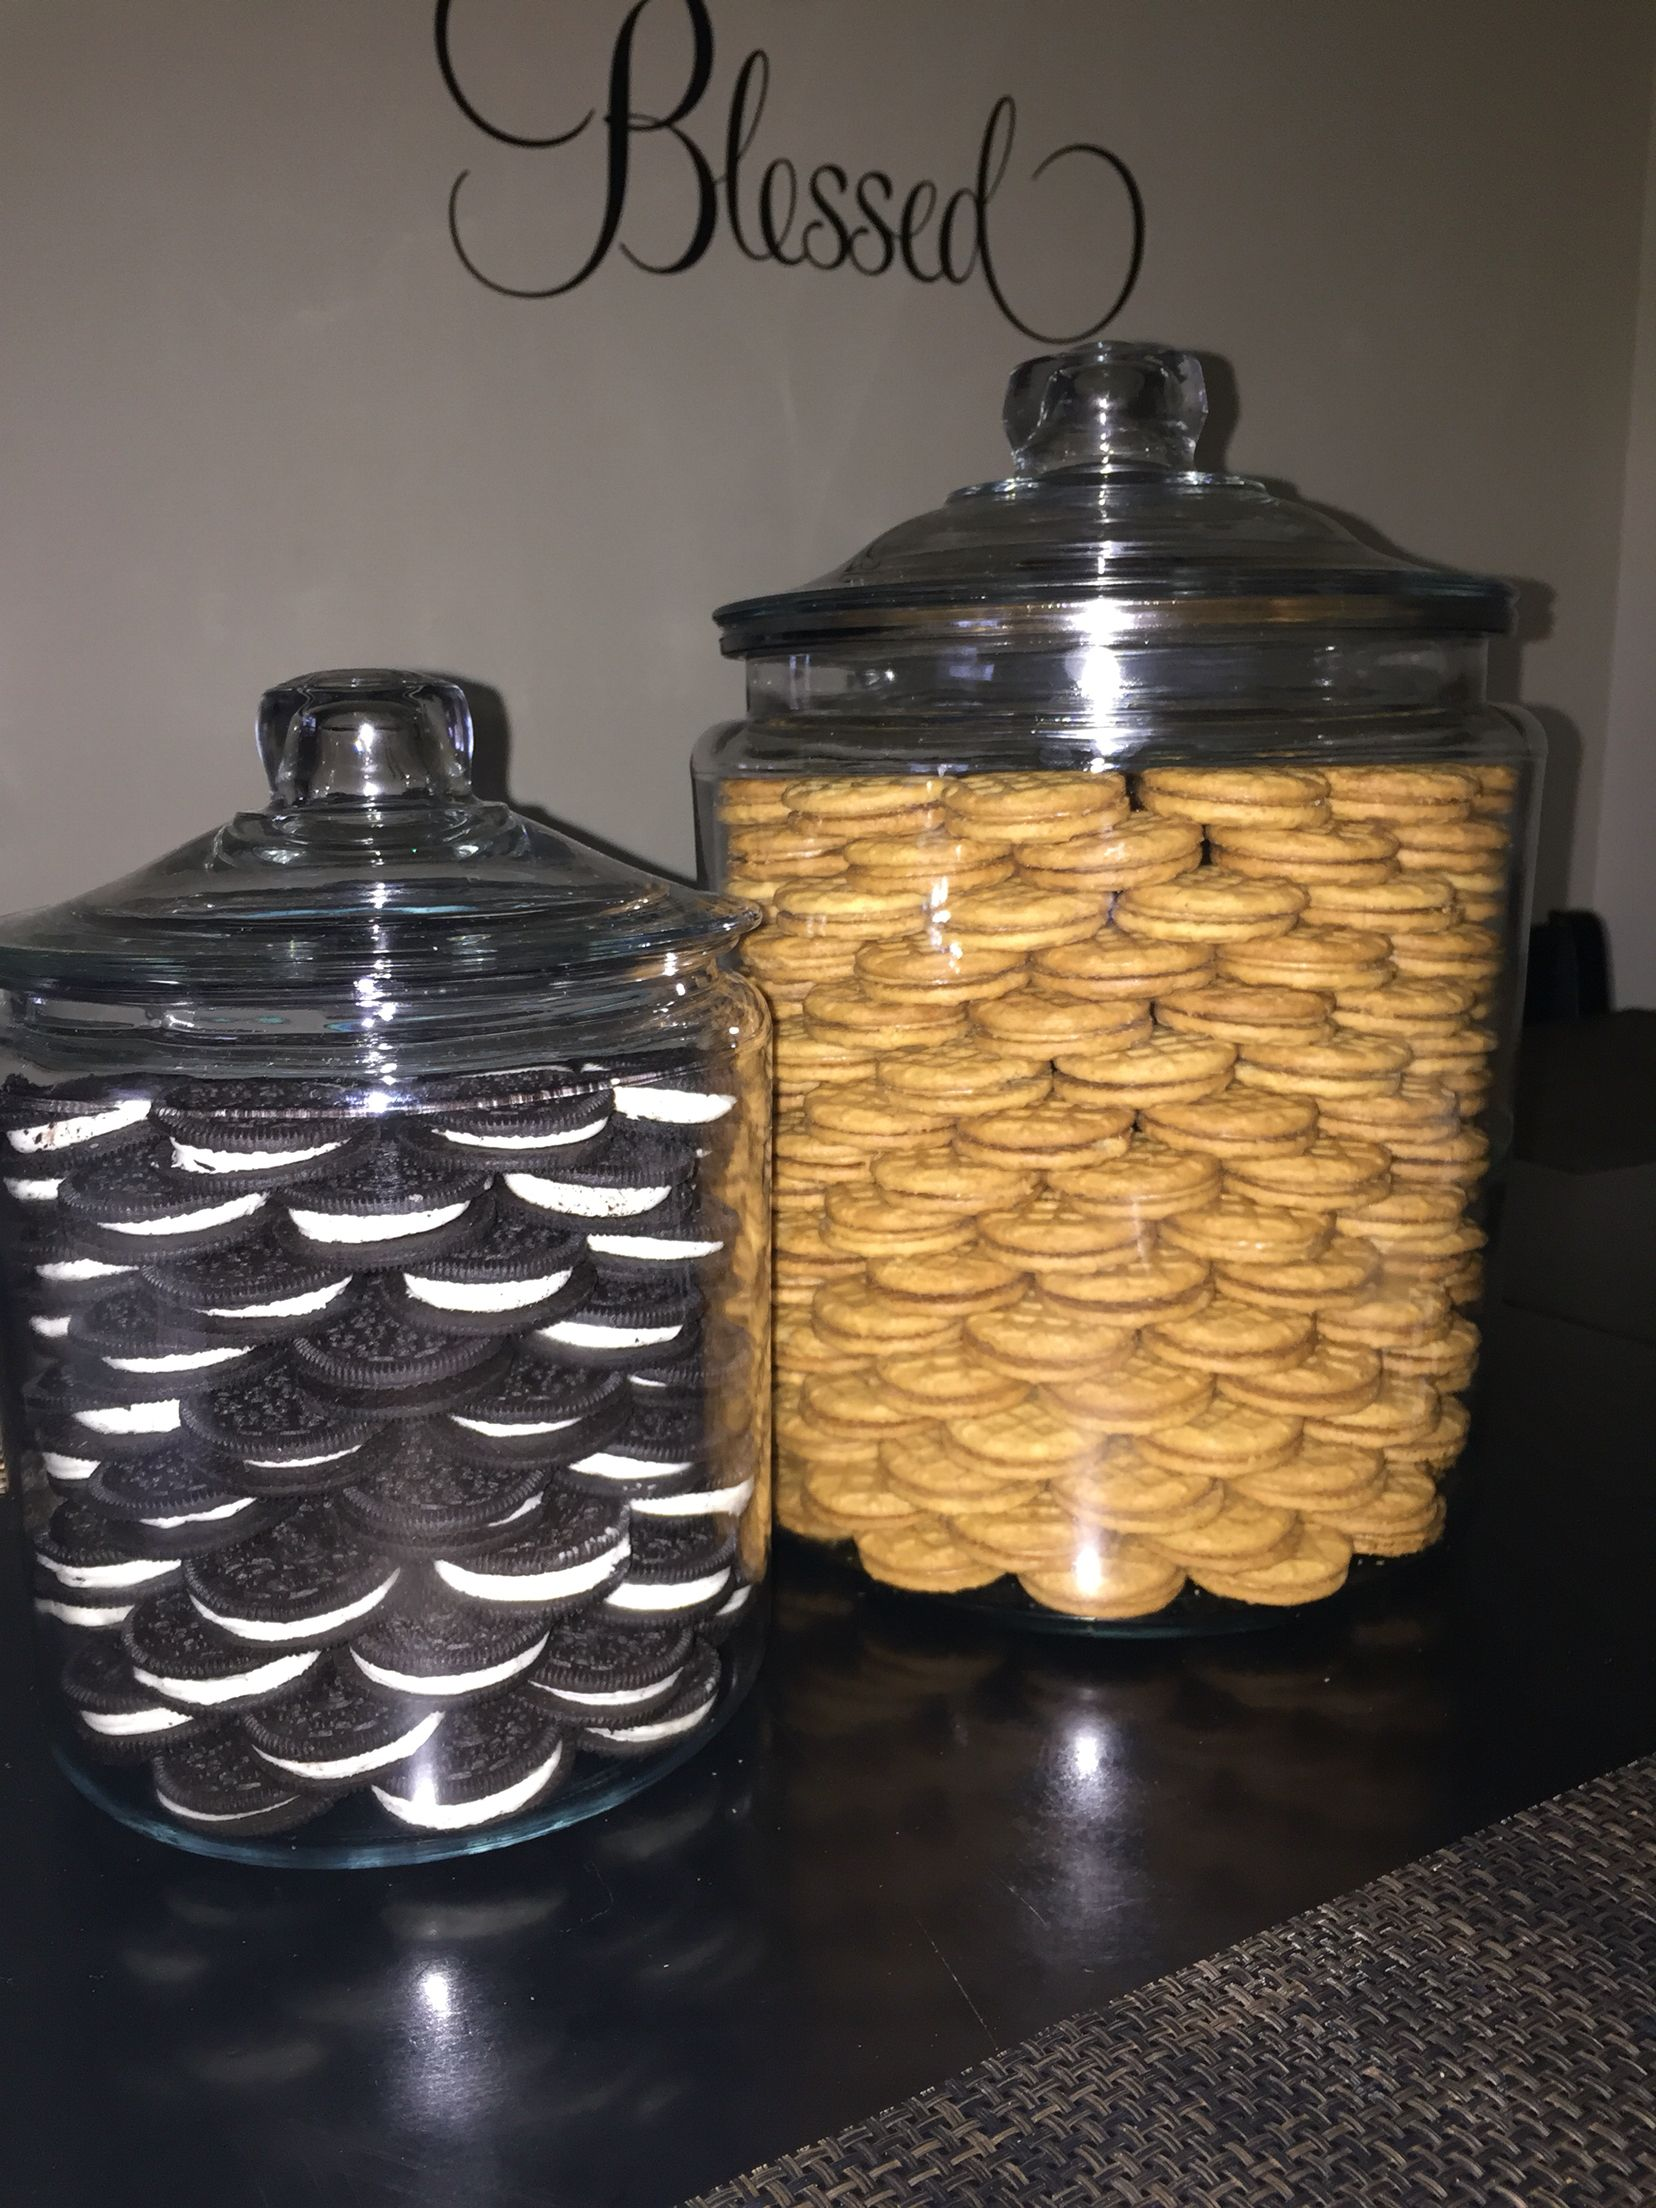 Khloe Kardashian Cookie Jar Captivating My Cookie Jars Who Says Organization Has To Be Boring Ok Ok 2018